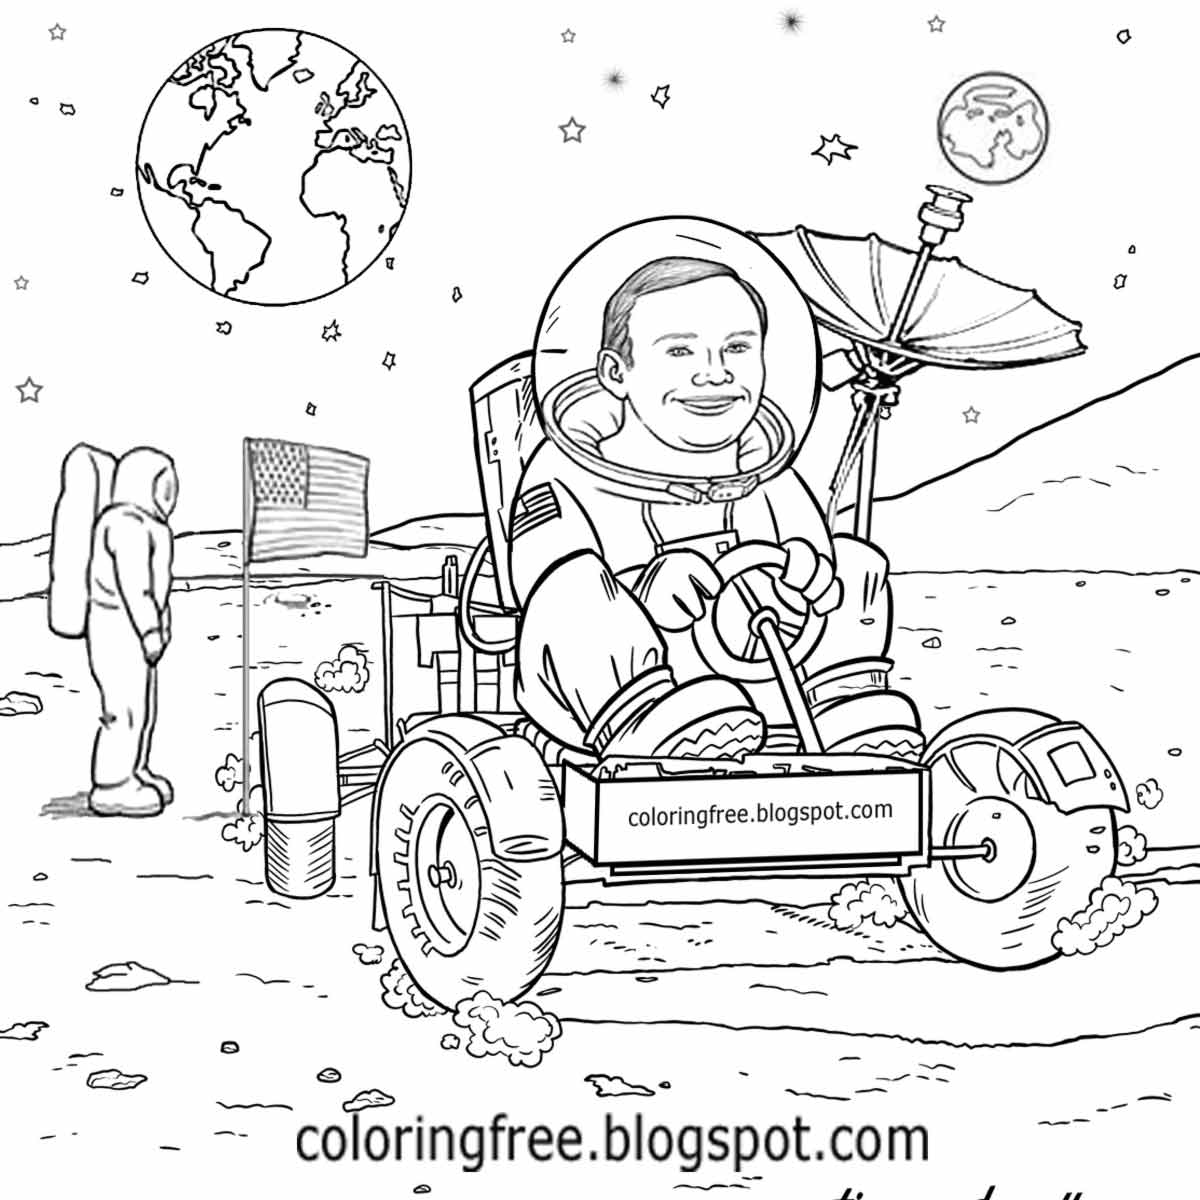 Space Rover Drawing At Getdrawings